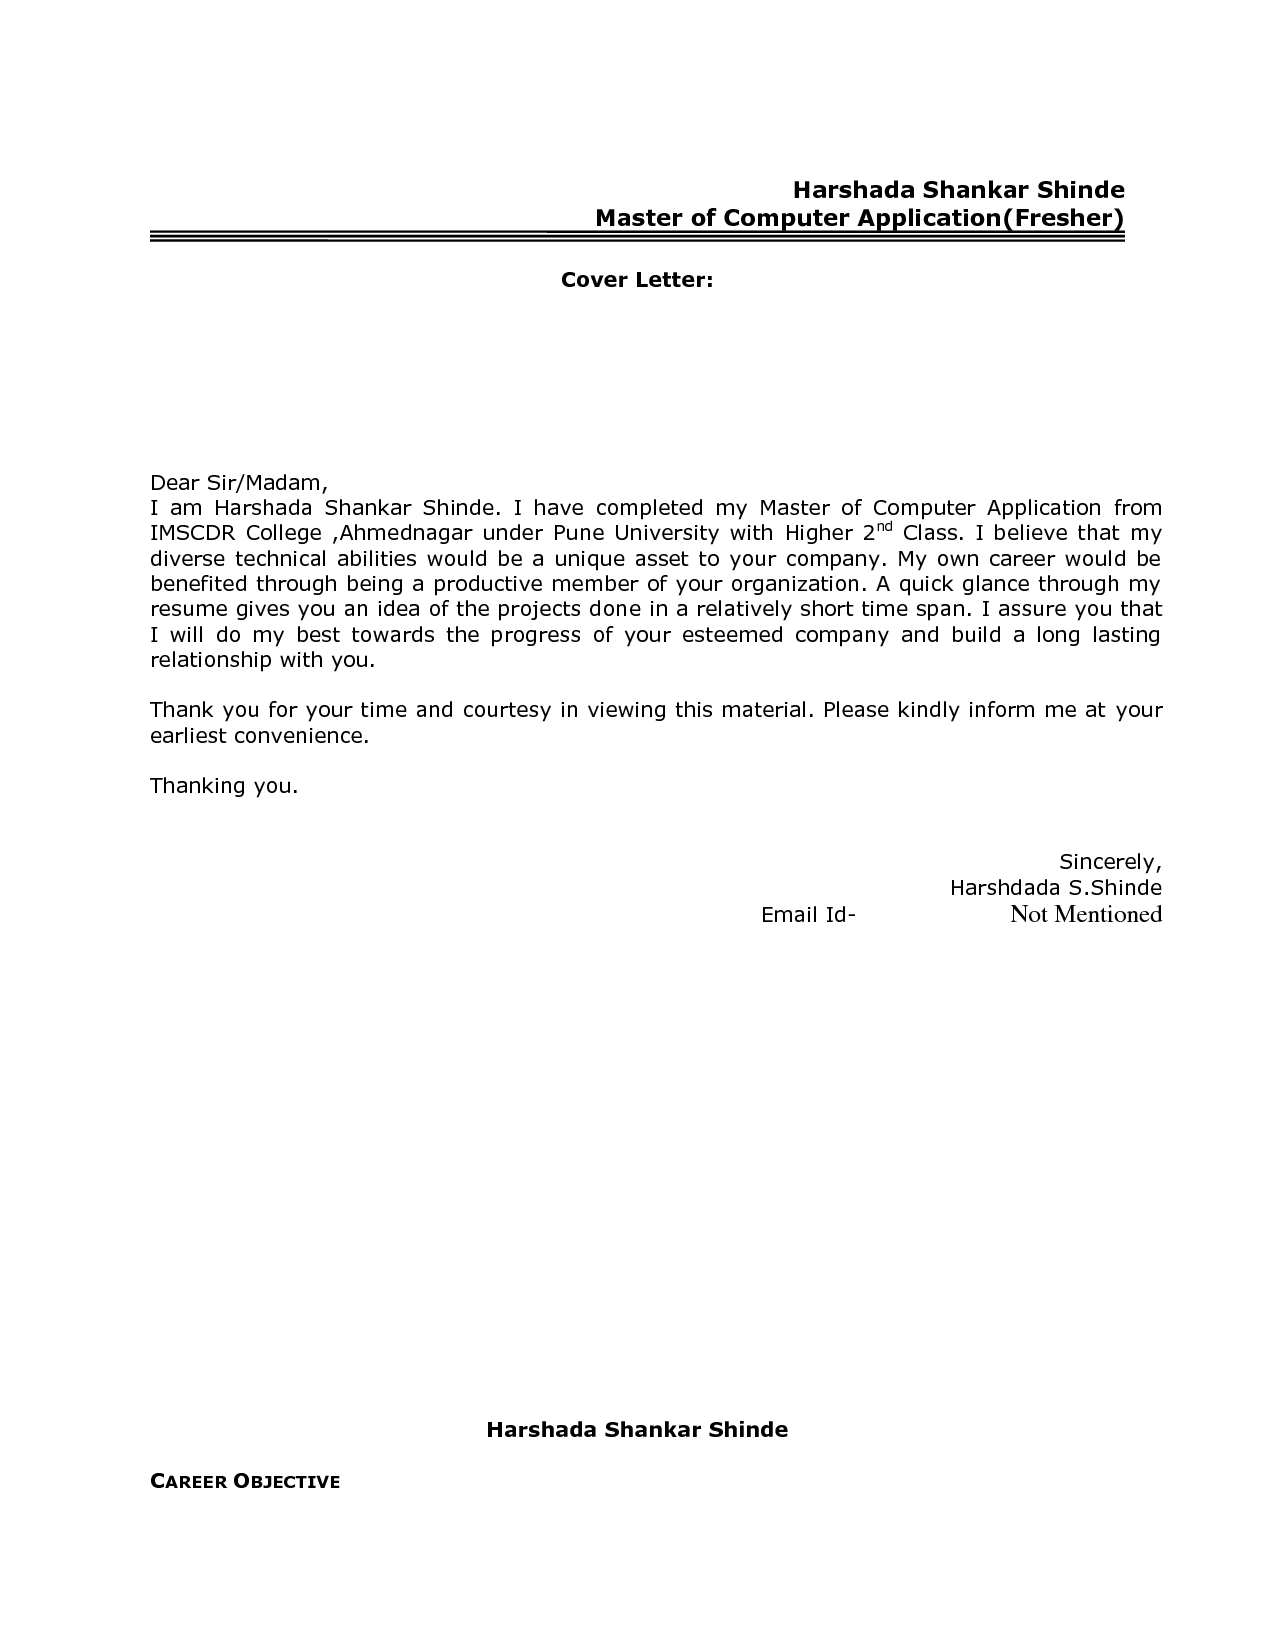 Cover Letter Resume Sample Best Resume Cover Letter Format For Freshers Govt Jobcover